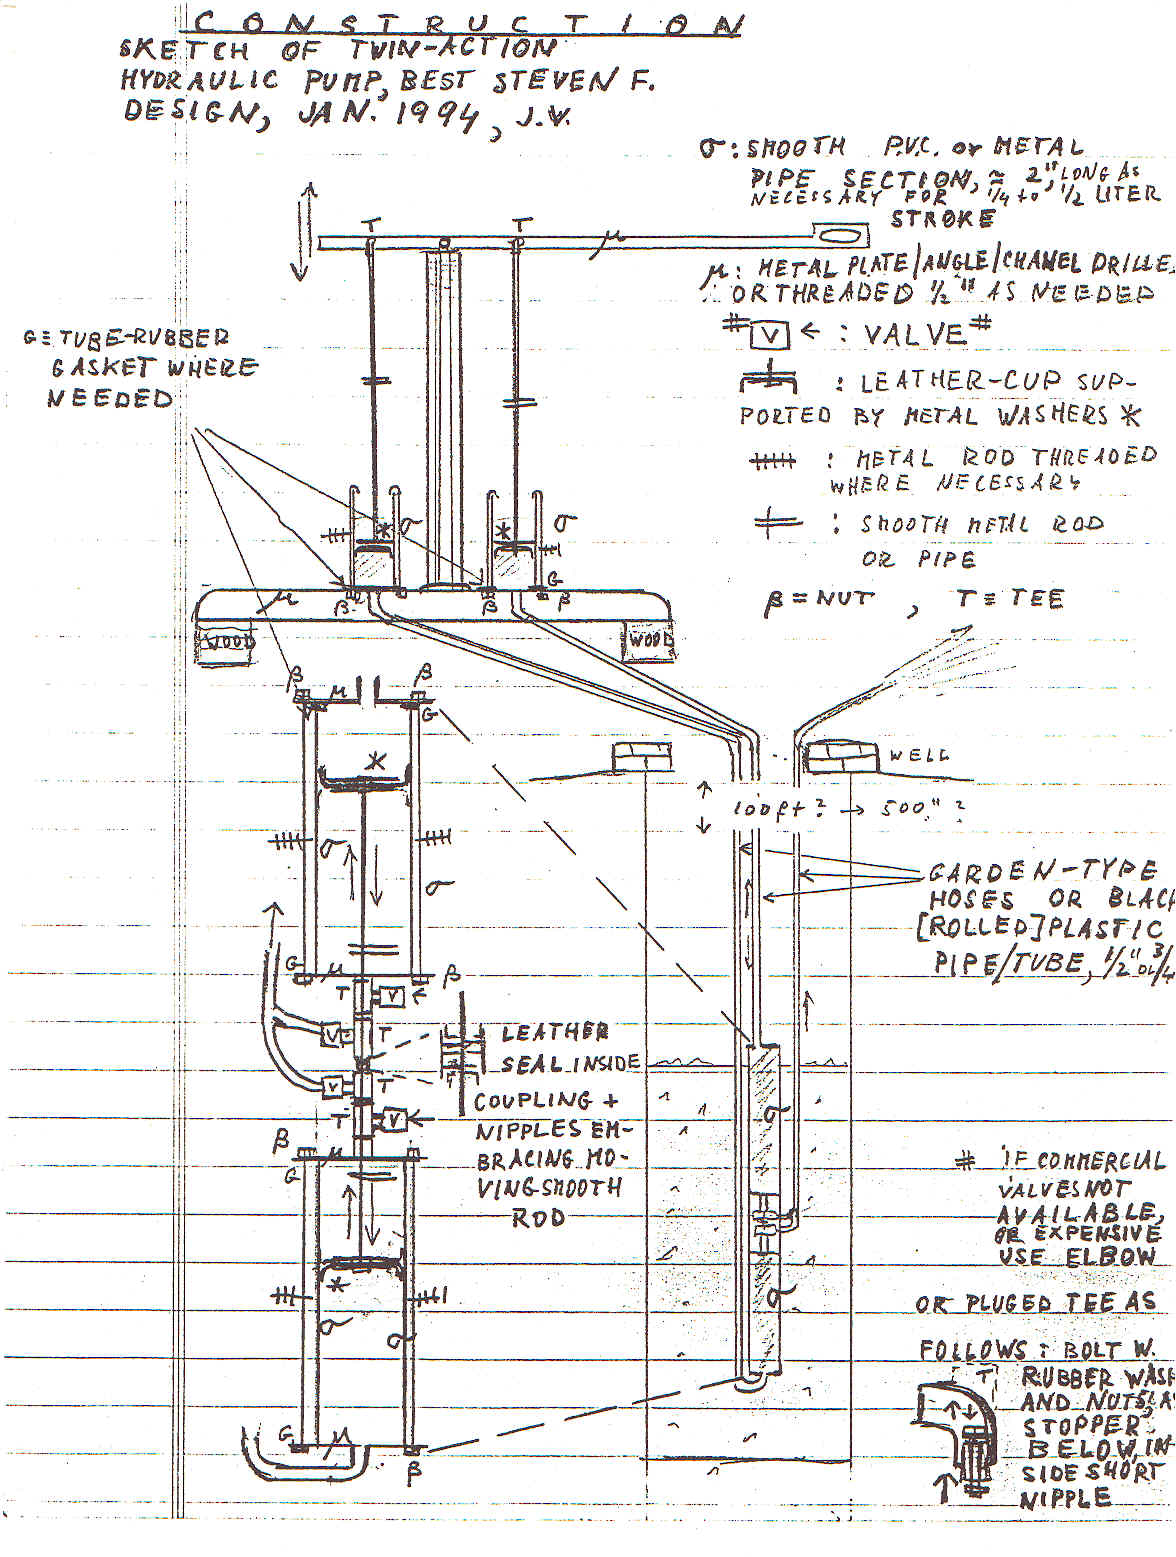 Steven Homepage Steam Engine Piston Diagram Developing A Bladder Sturdy Enough To Withstand Continual Expansion And Contraction Is The Key Success Of This Pump With Sufficiently Stiff